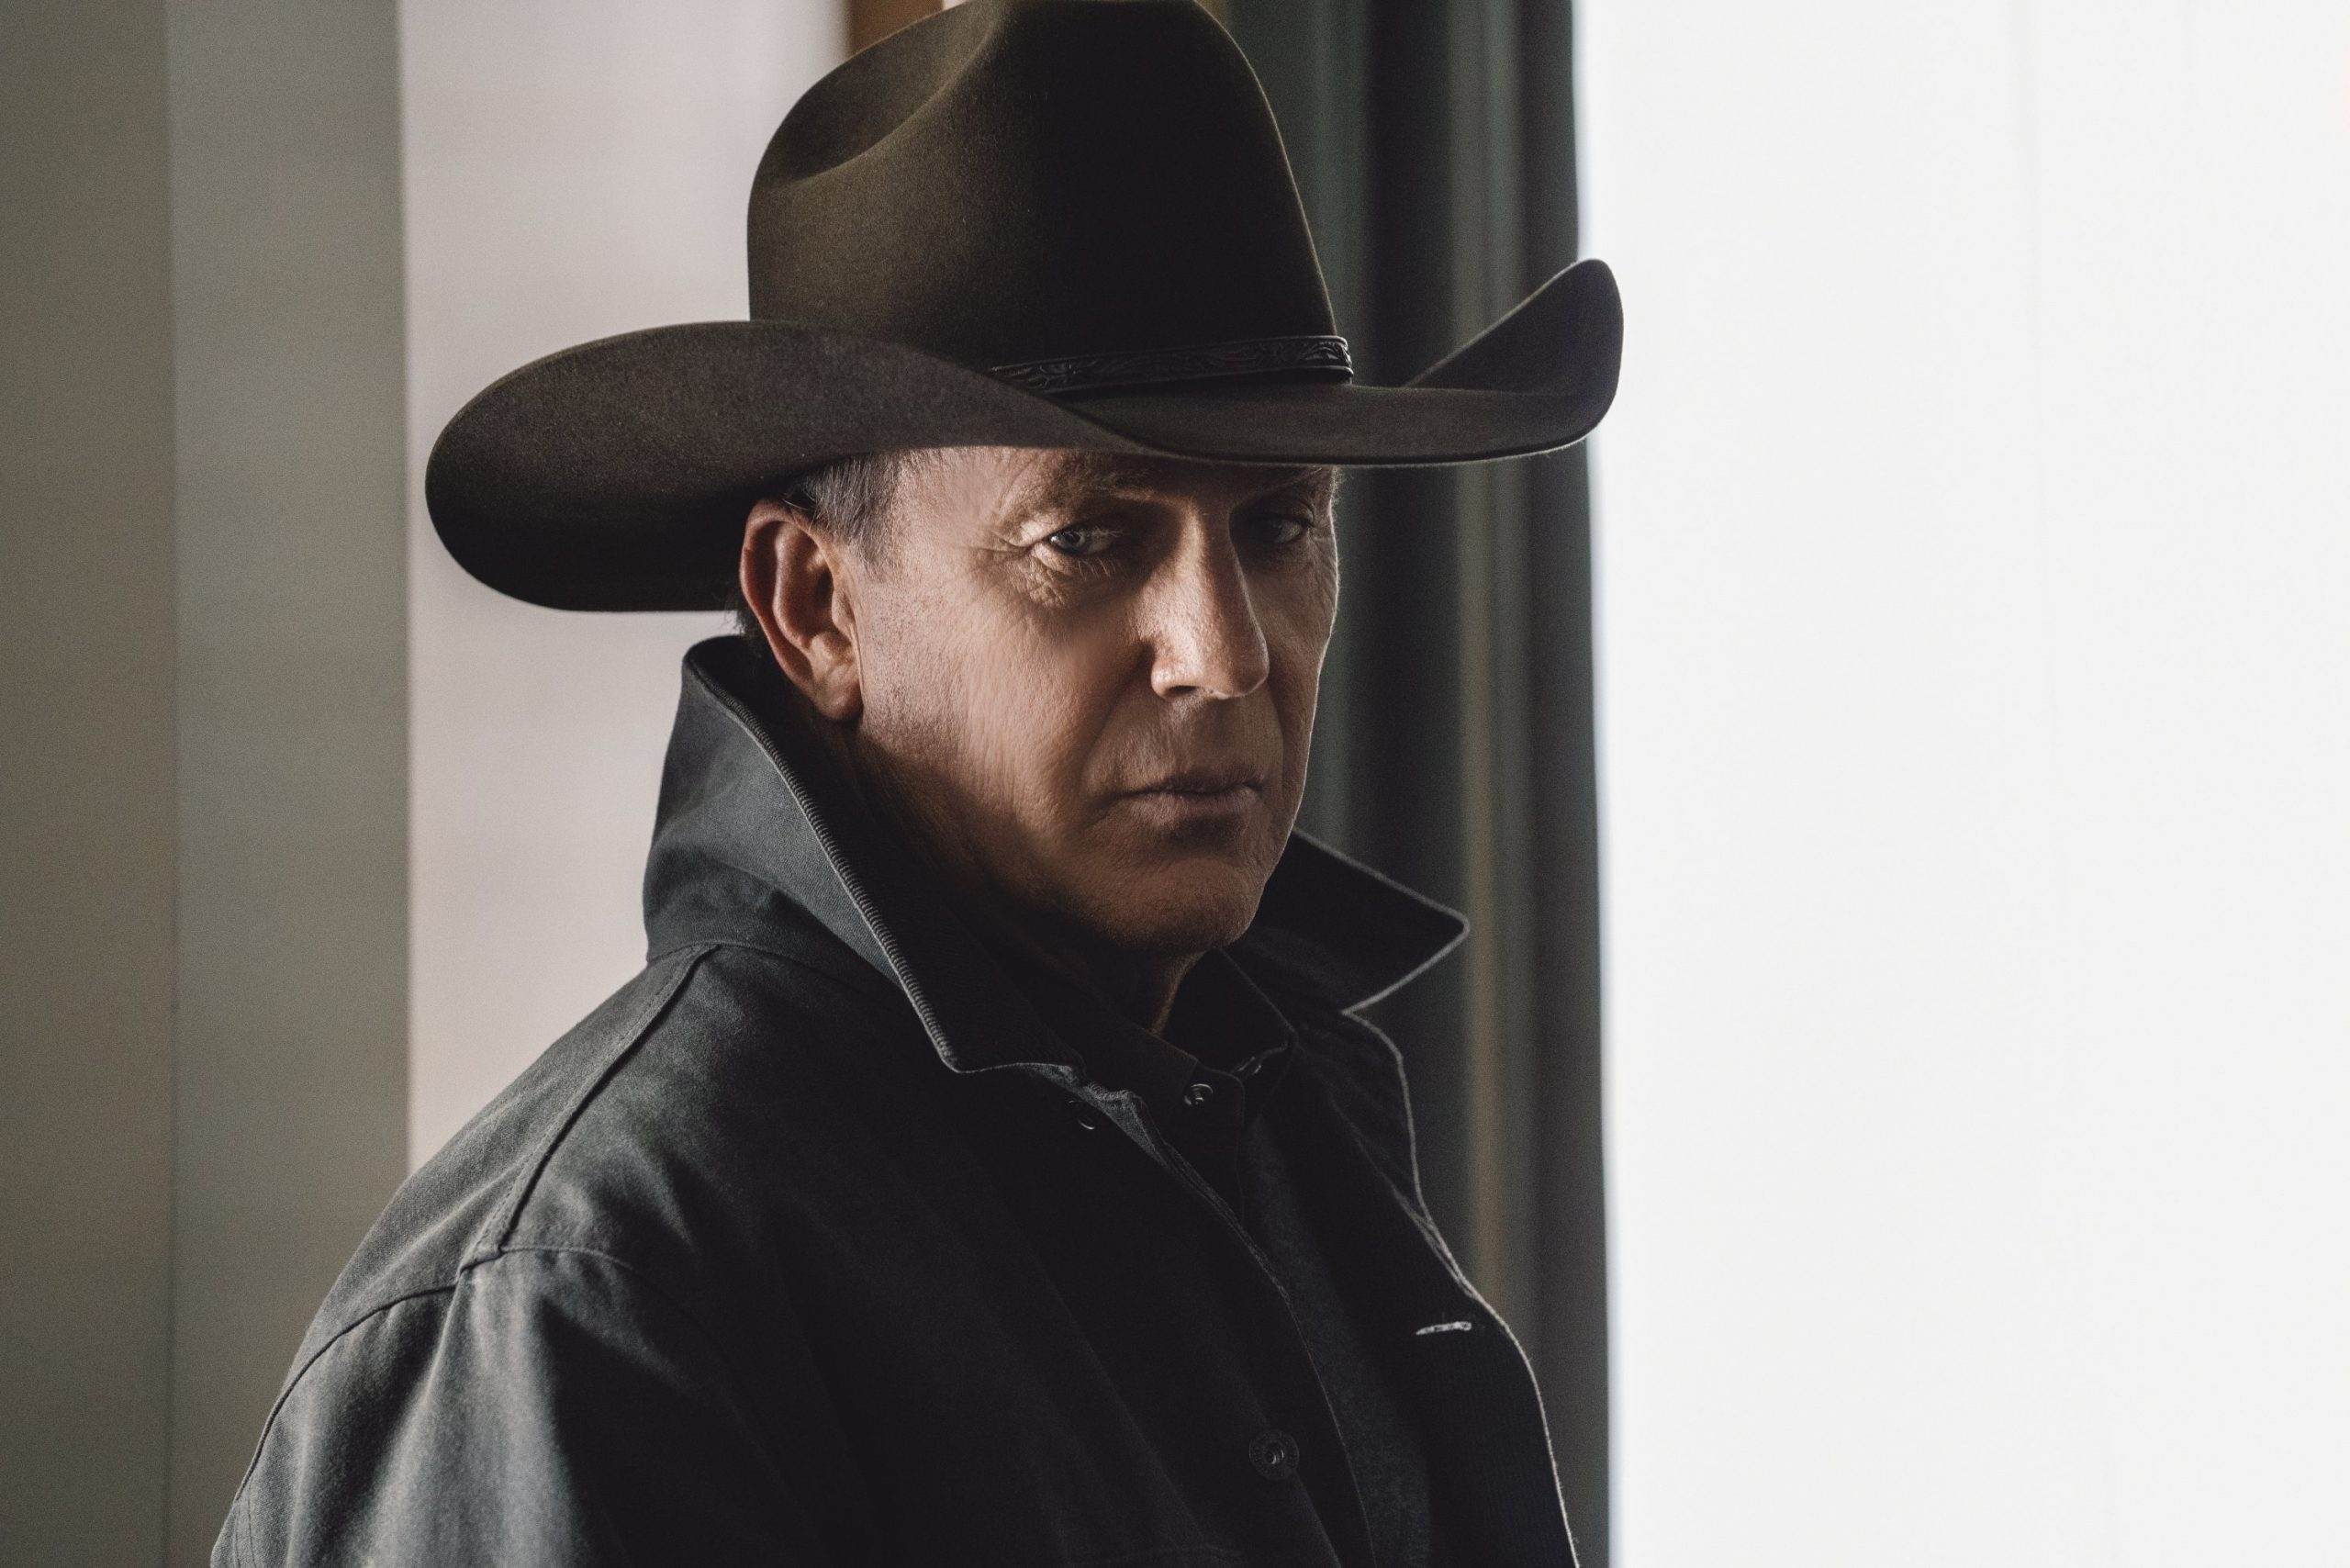 Kevin Costner as John Dutton in Yellowstone